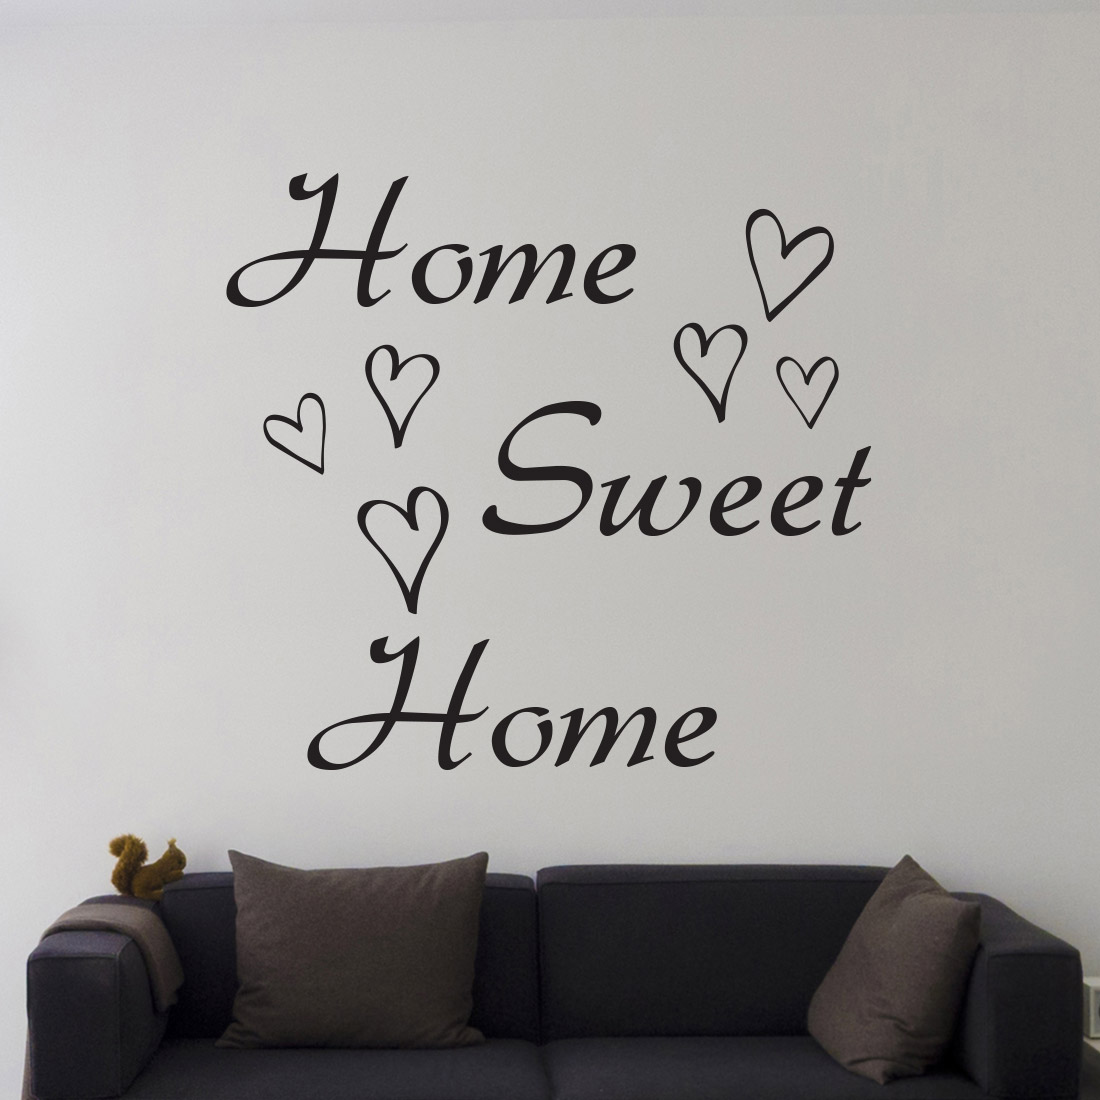 Home Sweet Home Muursticker - Muurstickerstunter.nl